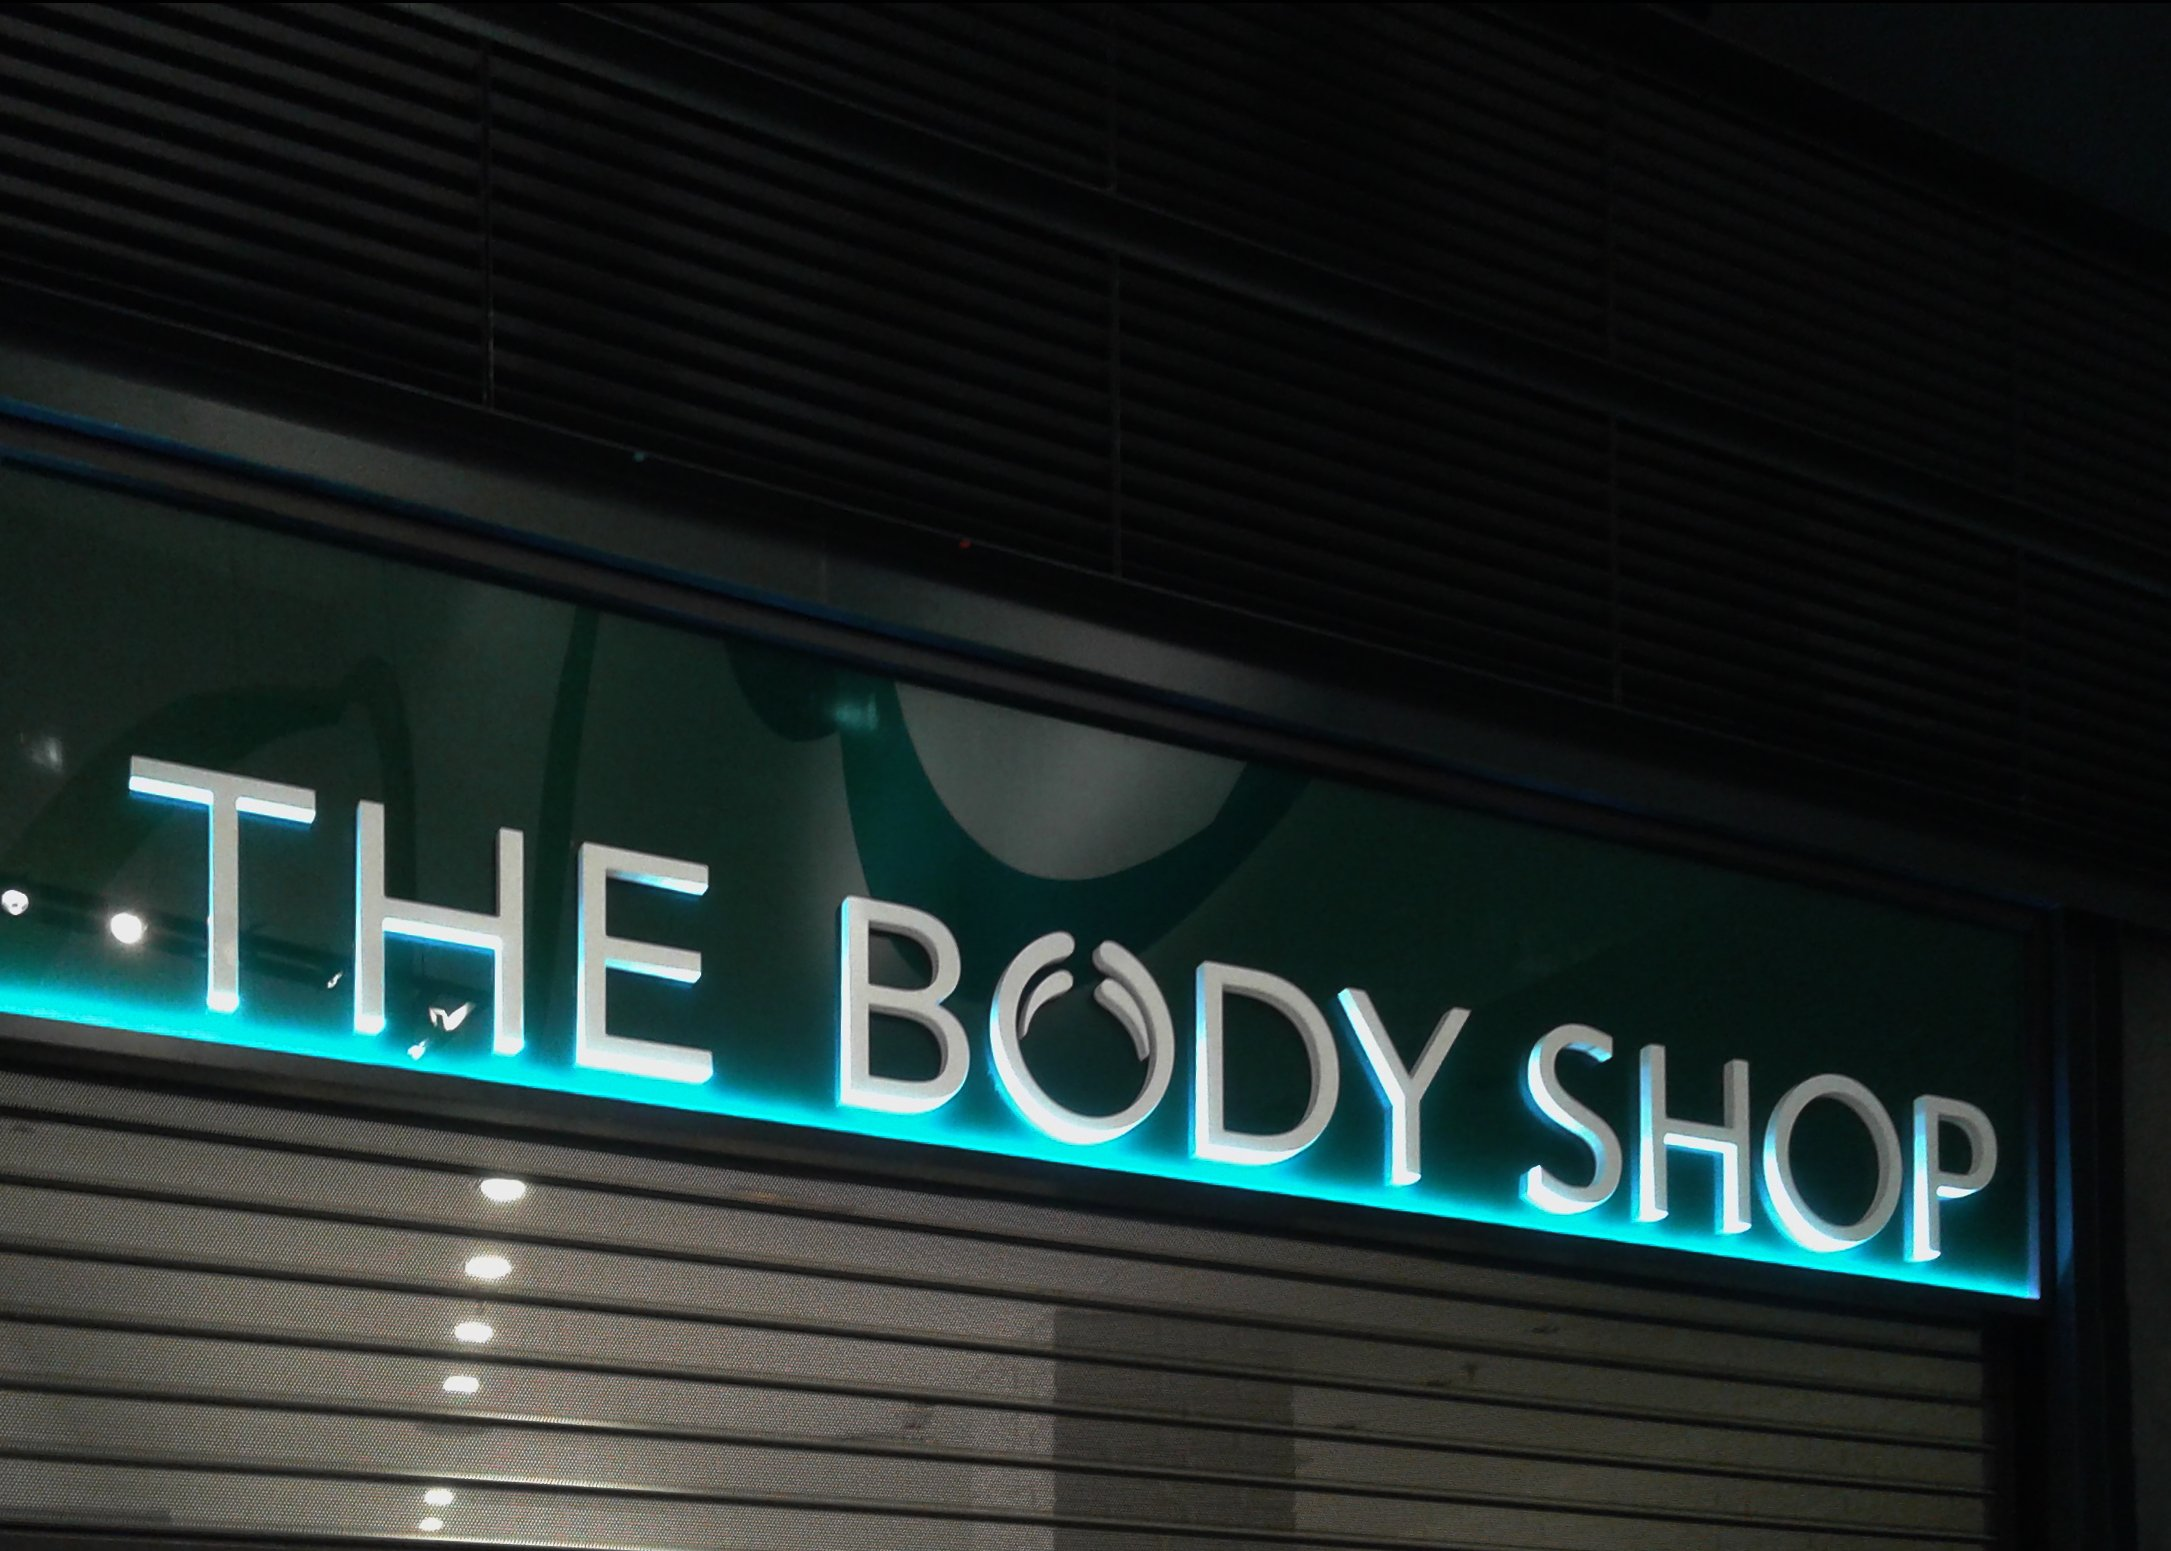 Corpóreas The Body Shop